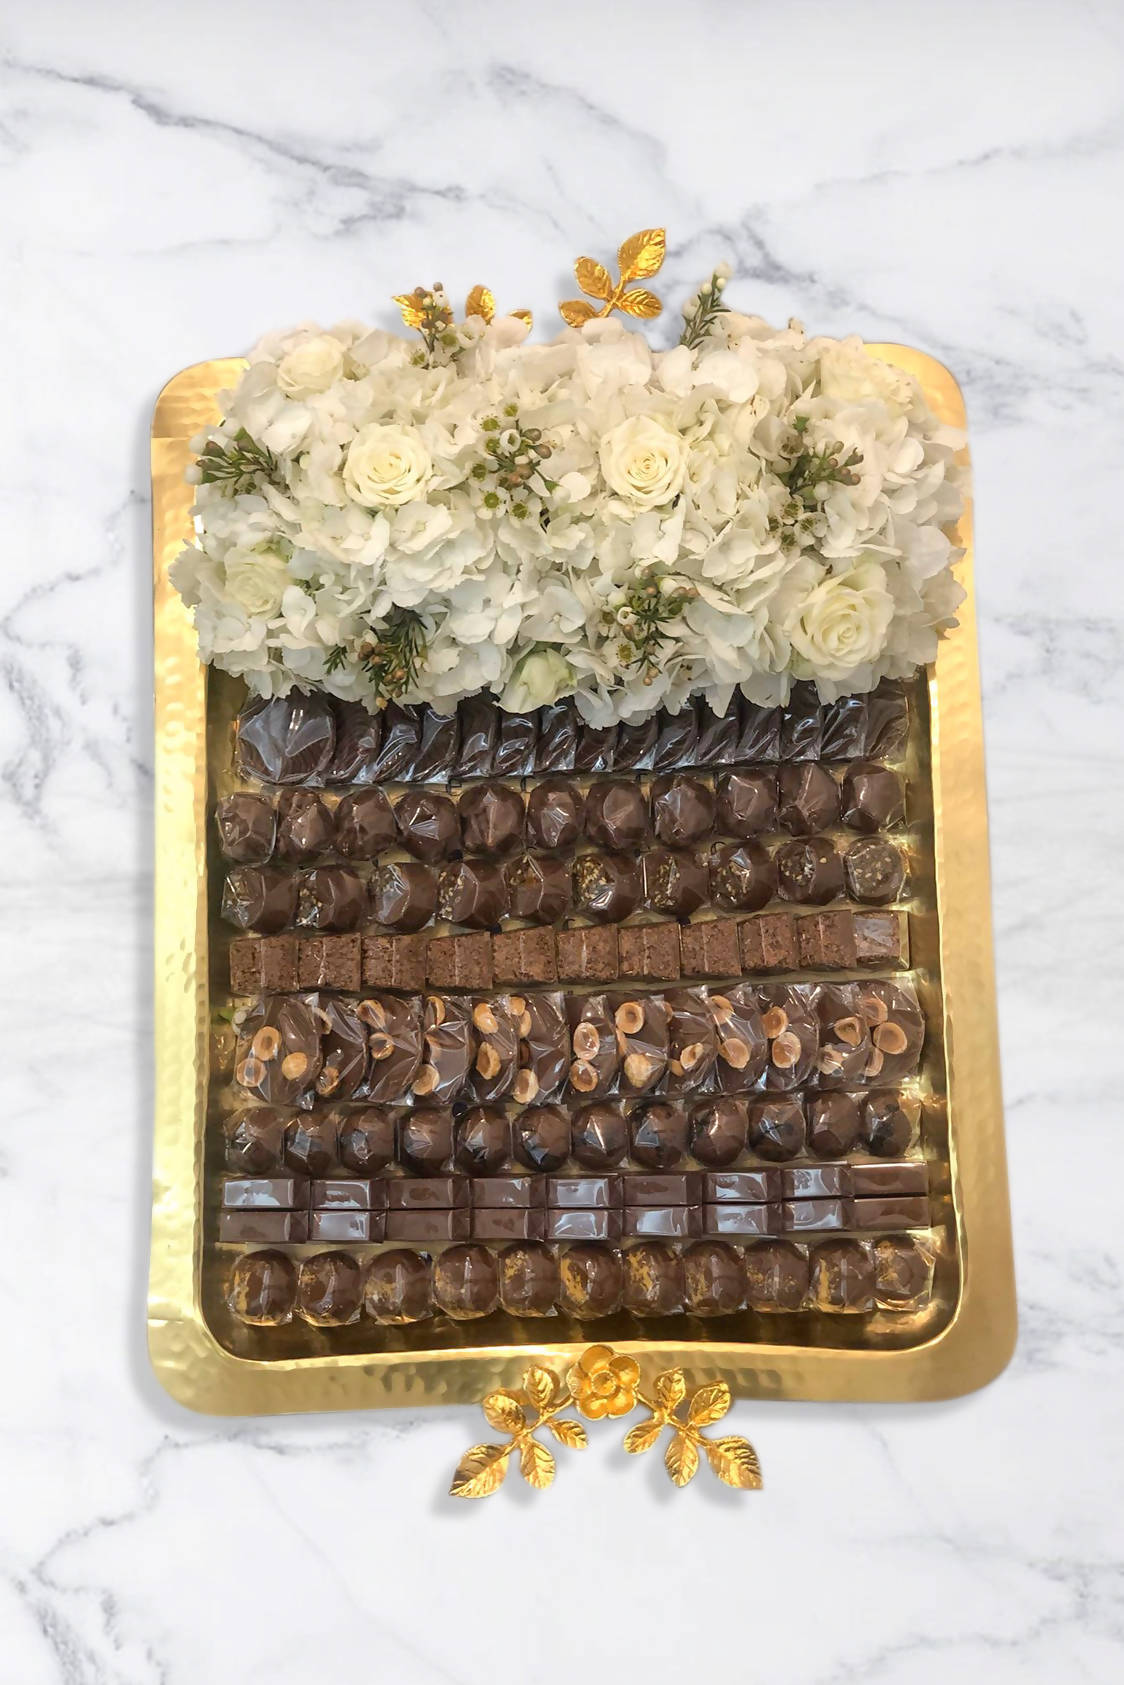 Golden Tray With Flowers & Chocolates